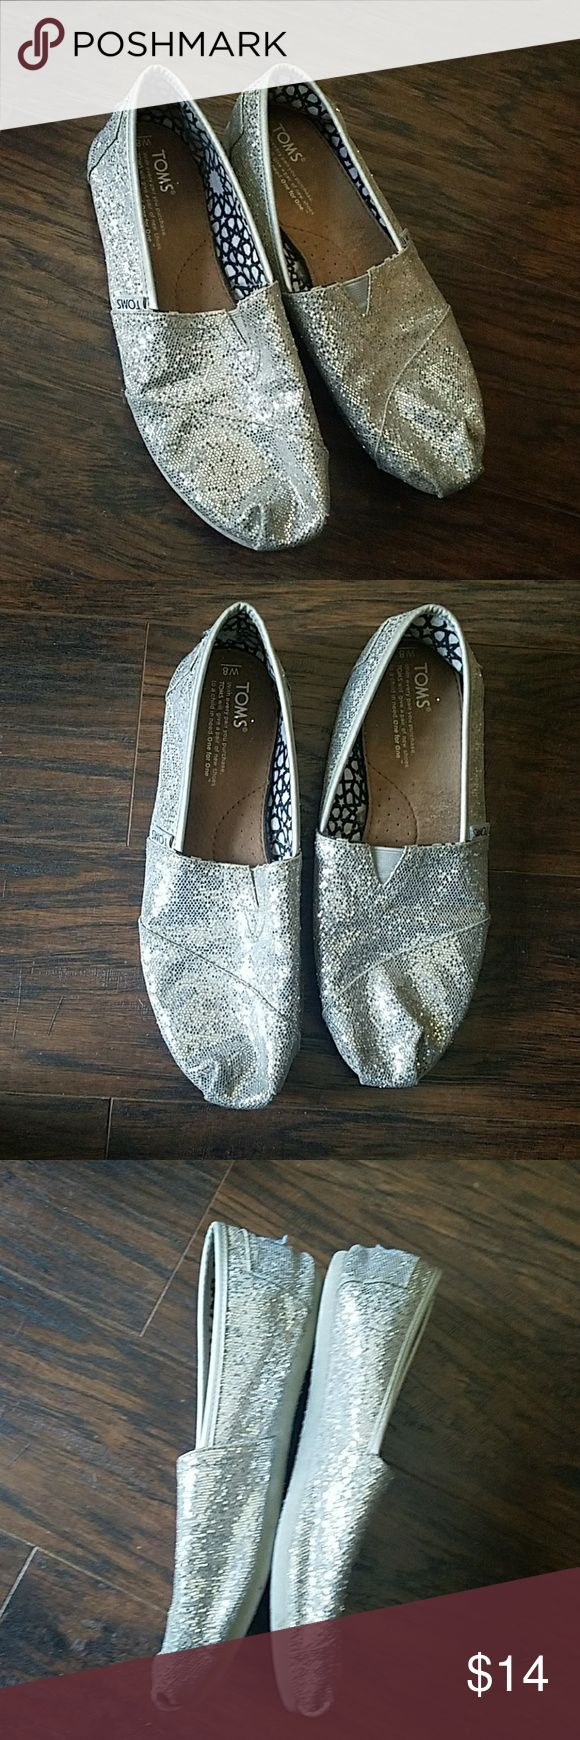 Silver Glitter Toms Size 8 Silver Glitter Toms Size 8 Shoes Flats & Loafers